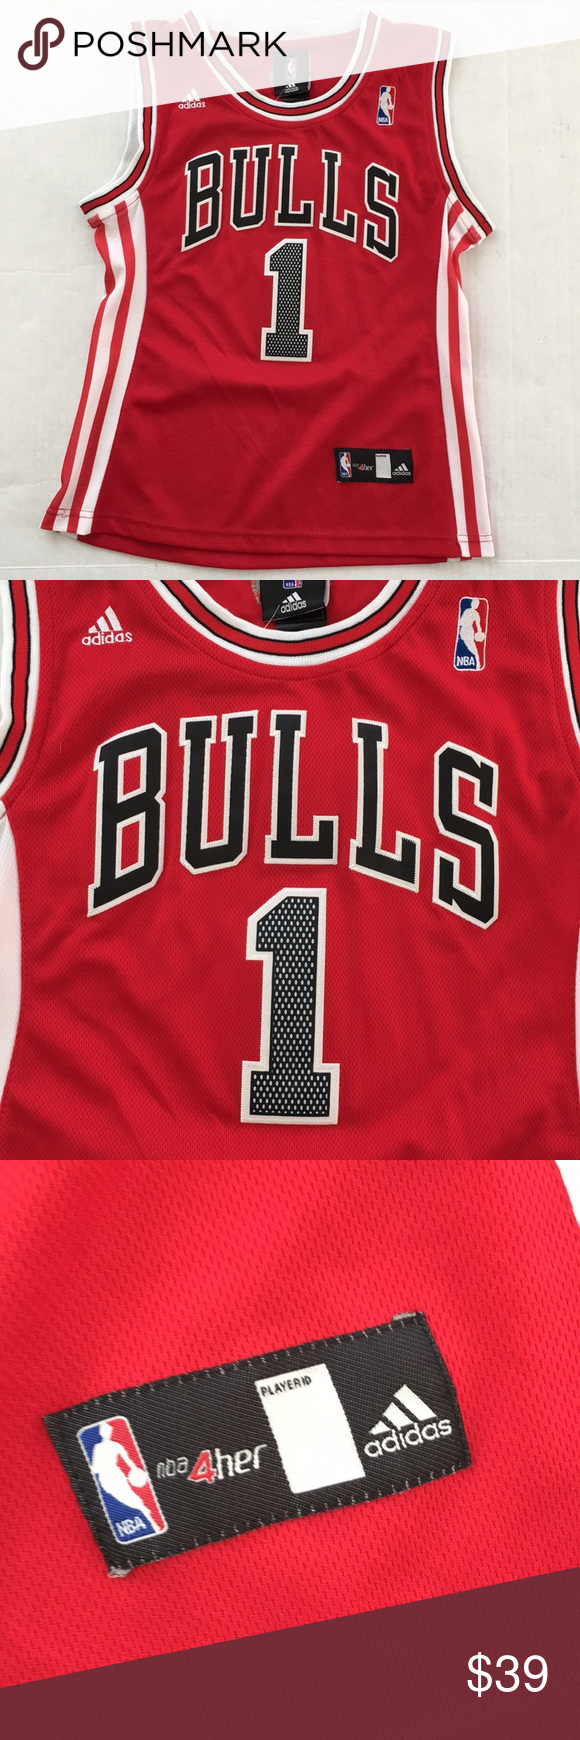 daa33a5b1335 Adidas NBA 4 Her Bulls Derrick Rose Jersey NEW Brand New With Tags Women s  Size Large Fee free to ask any questions! adidas Tops Tank Tops